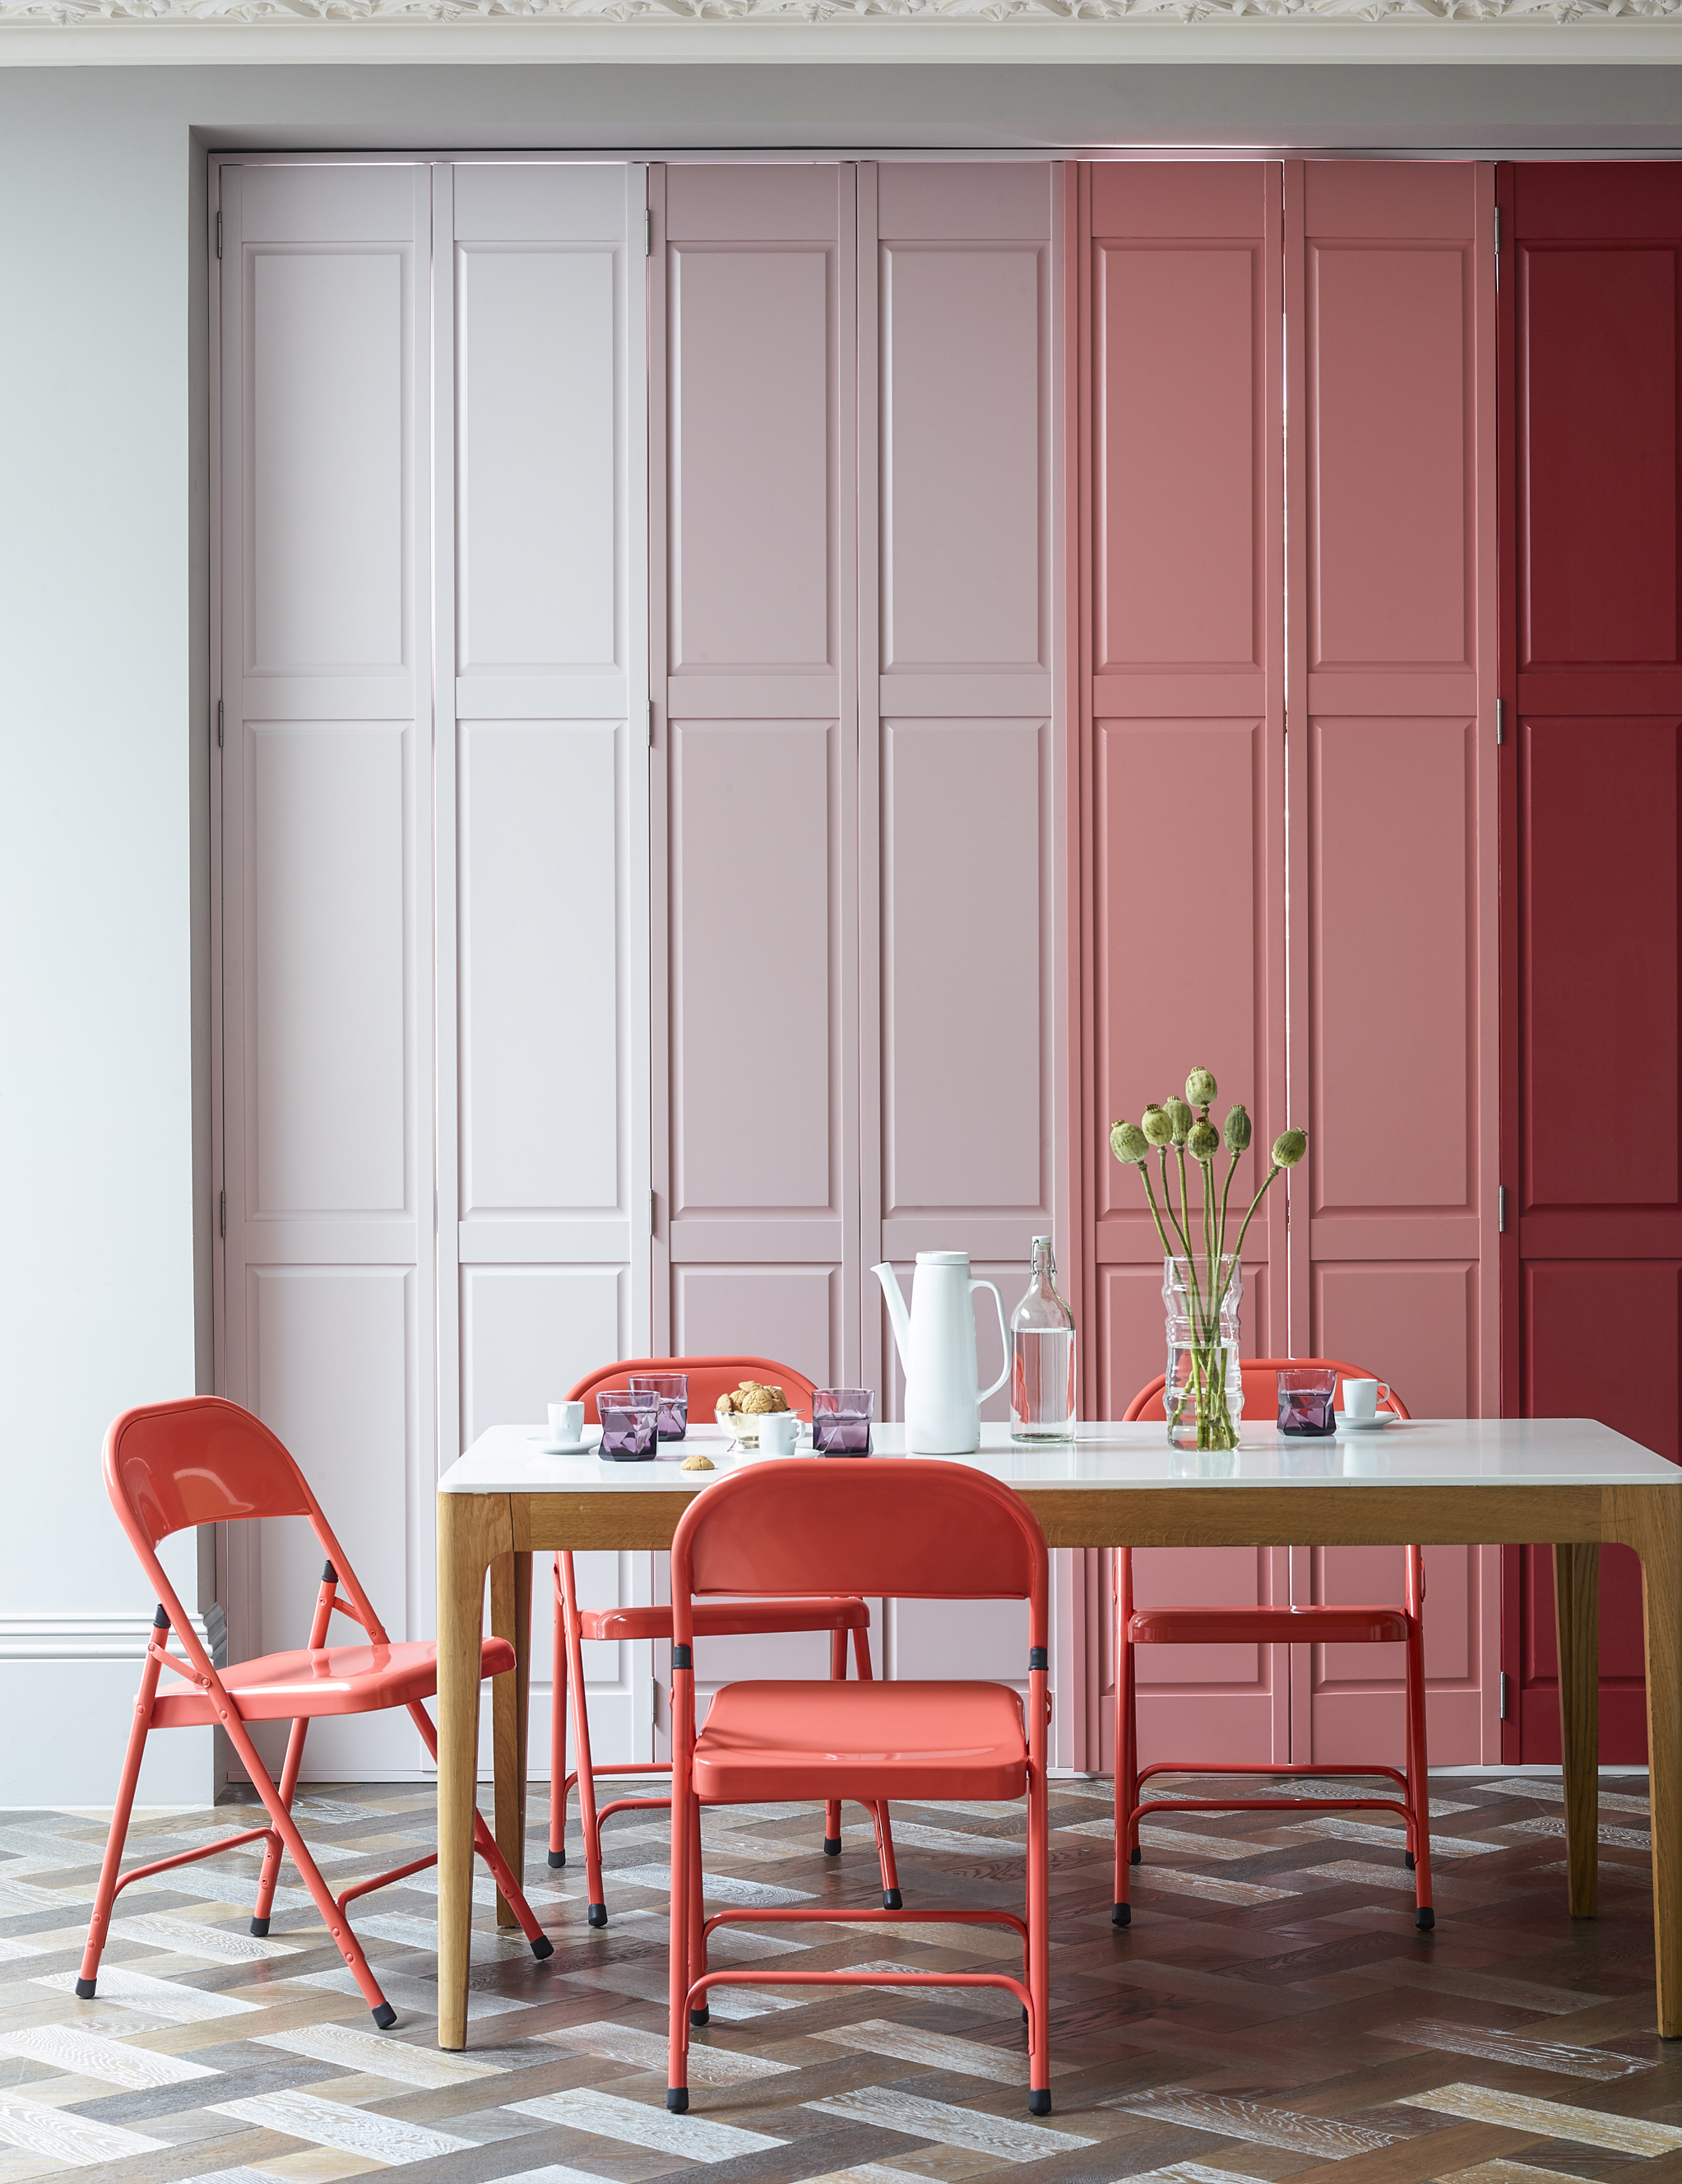 Solid Panel Wood Shutters-   Solid panel shutters have a traditional look to them, these types of shutters were used in victorian homes and can add that character back if you live in a period property as well as looking great in a contemporary setting.   They are also perfect for kids bedrooms as they block out all the light.